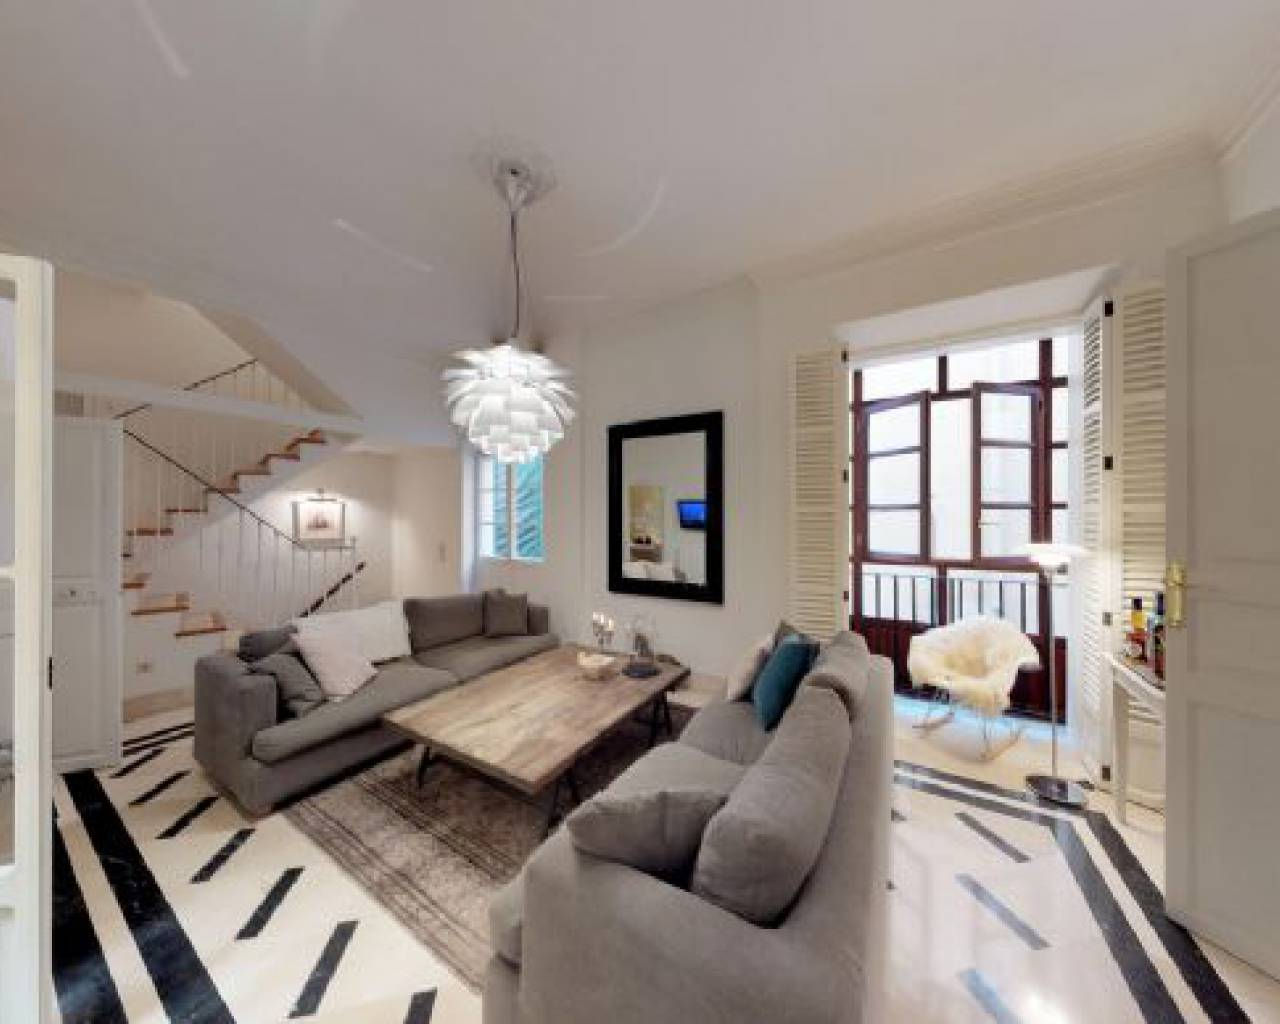 Townhouse - For sale - Palma de Mallorca - Palma De Mallorca